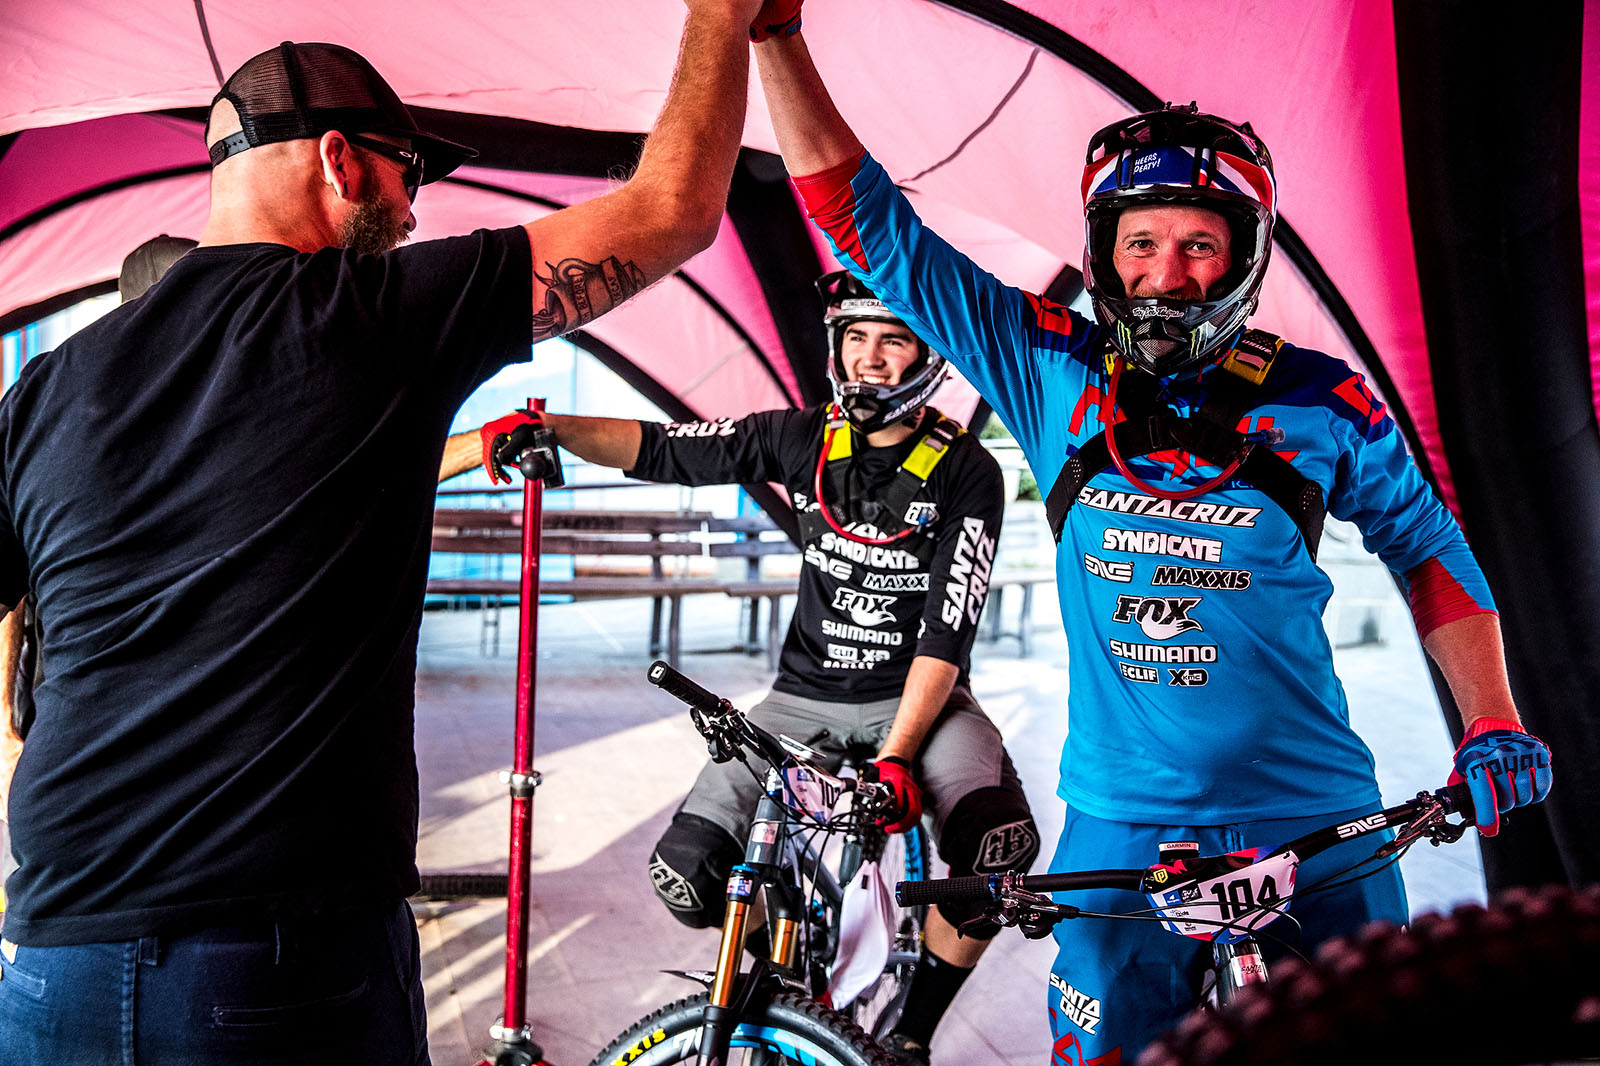 Luca Shaw and Steve Peat at the Enduro World Series race in Finale